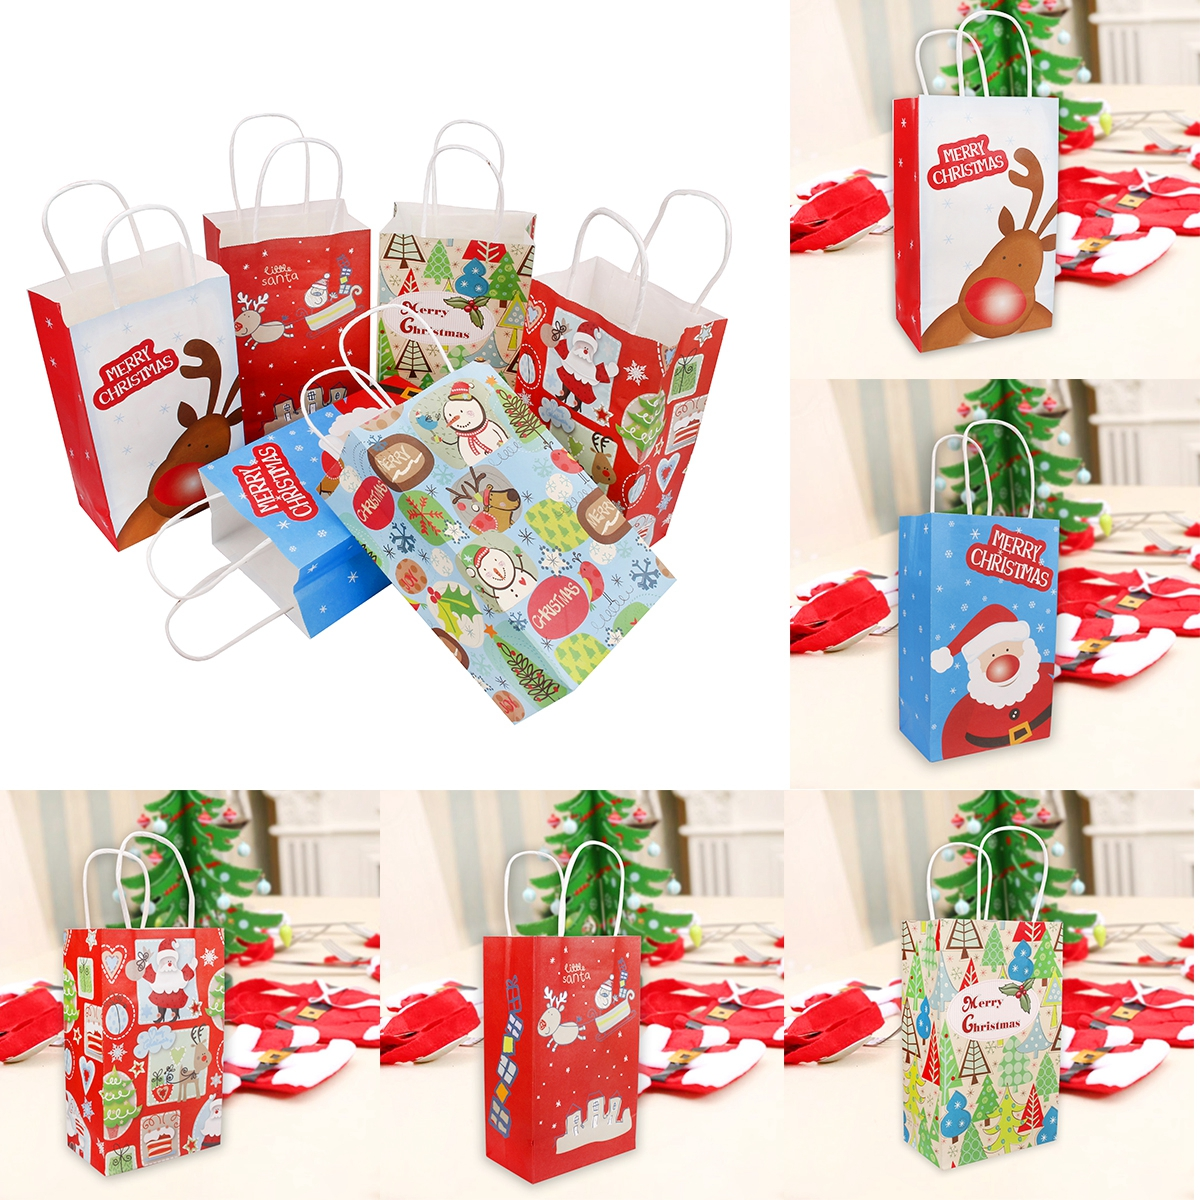 Christmas Gift Bags For Kids.Details About Christmas Gift Bags Paper Tote Bag Xmas Stocking Santa Claus Home Decor Supplies